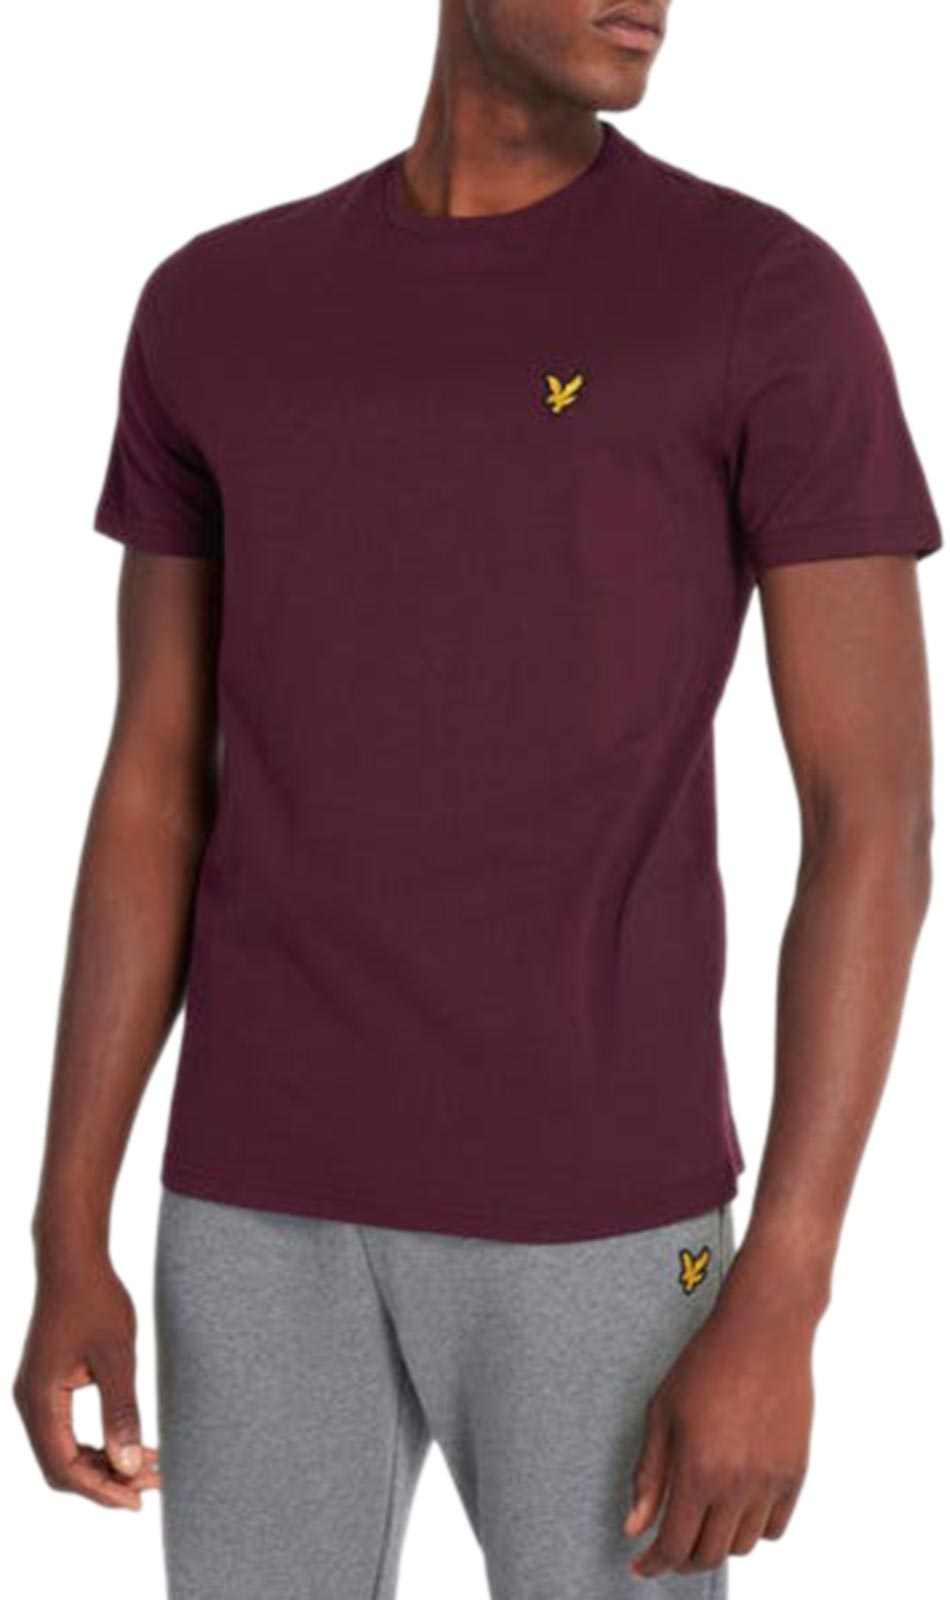 Lyle & Scott T-Shirt Burgundy